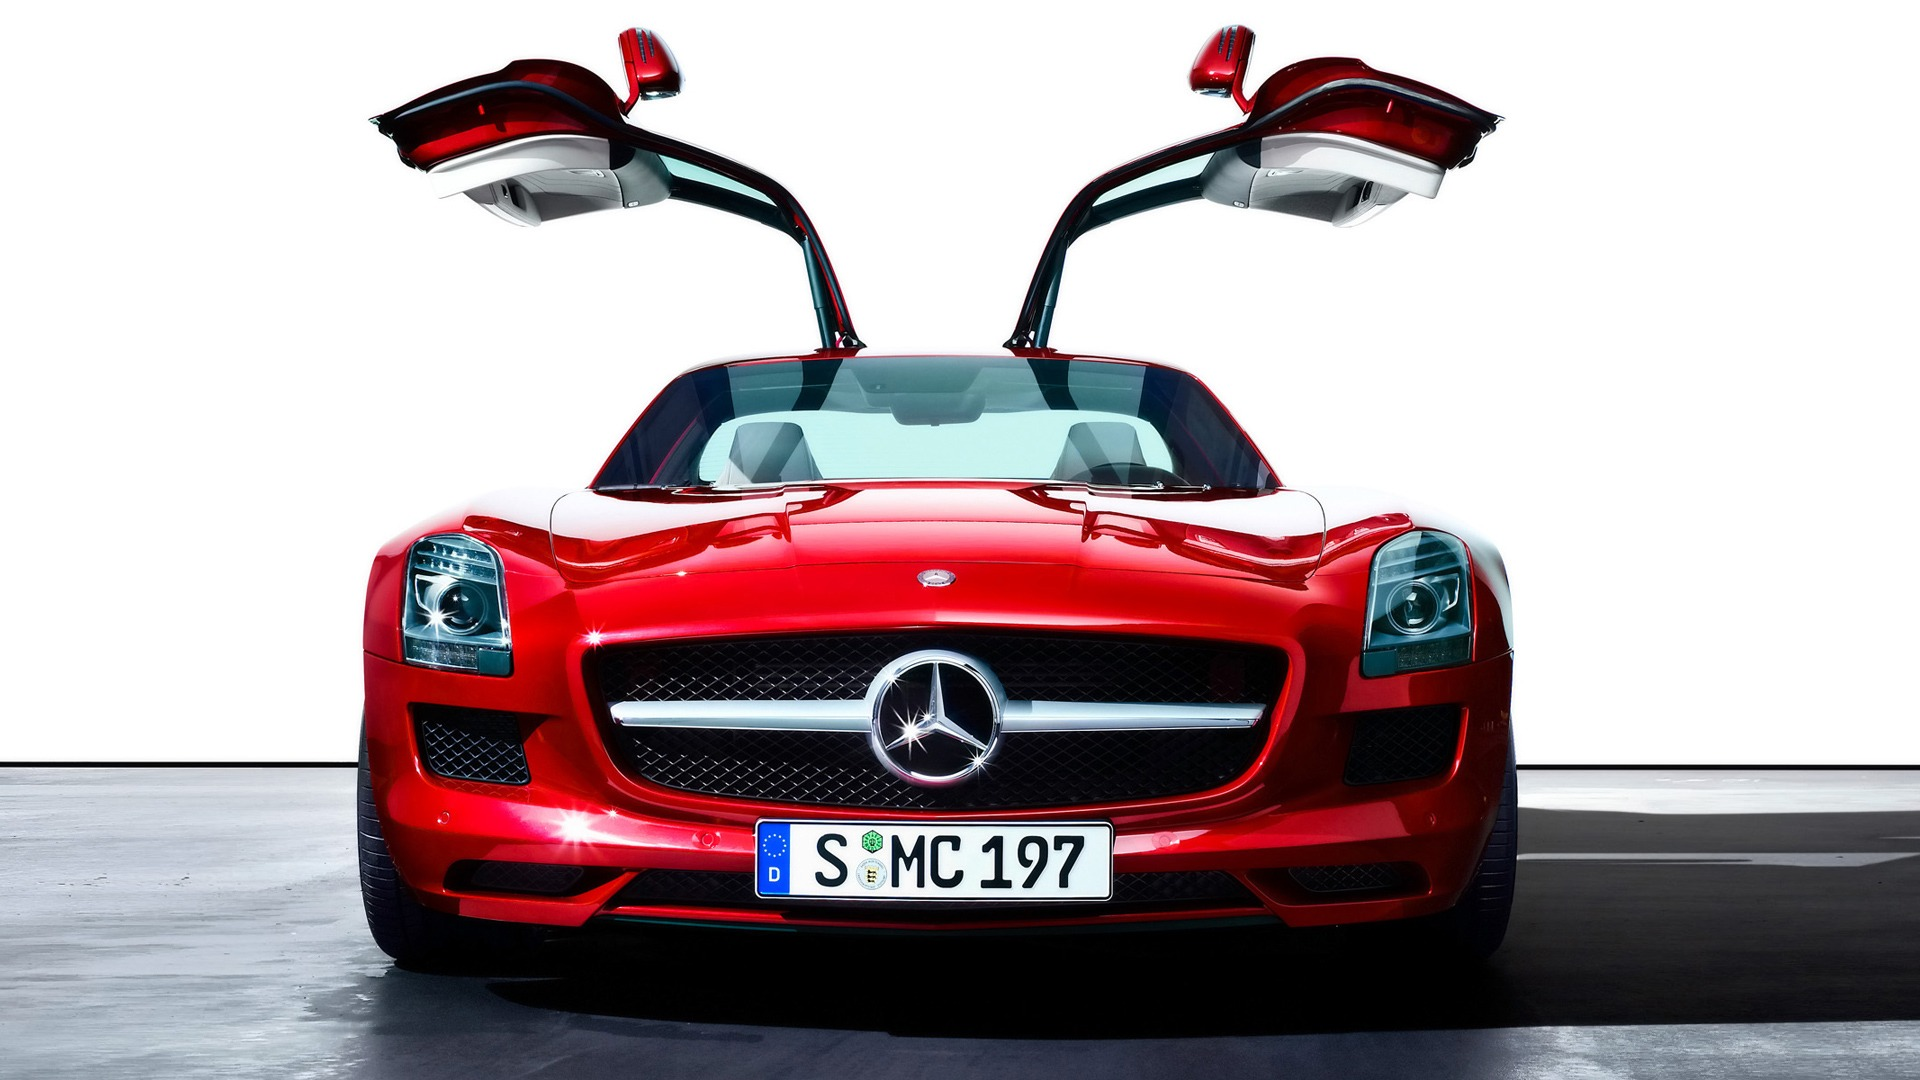 Animated Butterfly Wallpaper Red Mercedes Sls Amg Wallpaper Mercedes Cars Wallpapers In